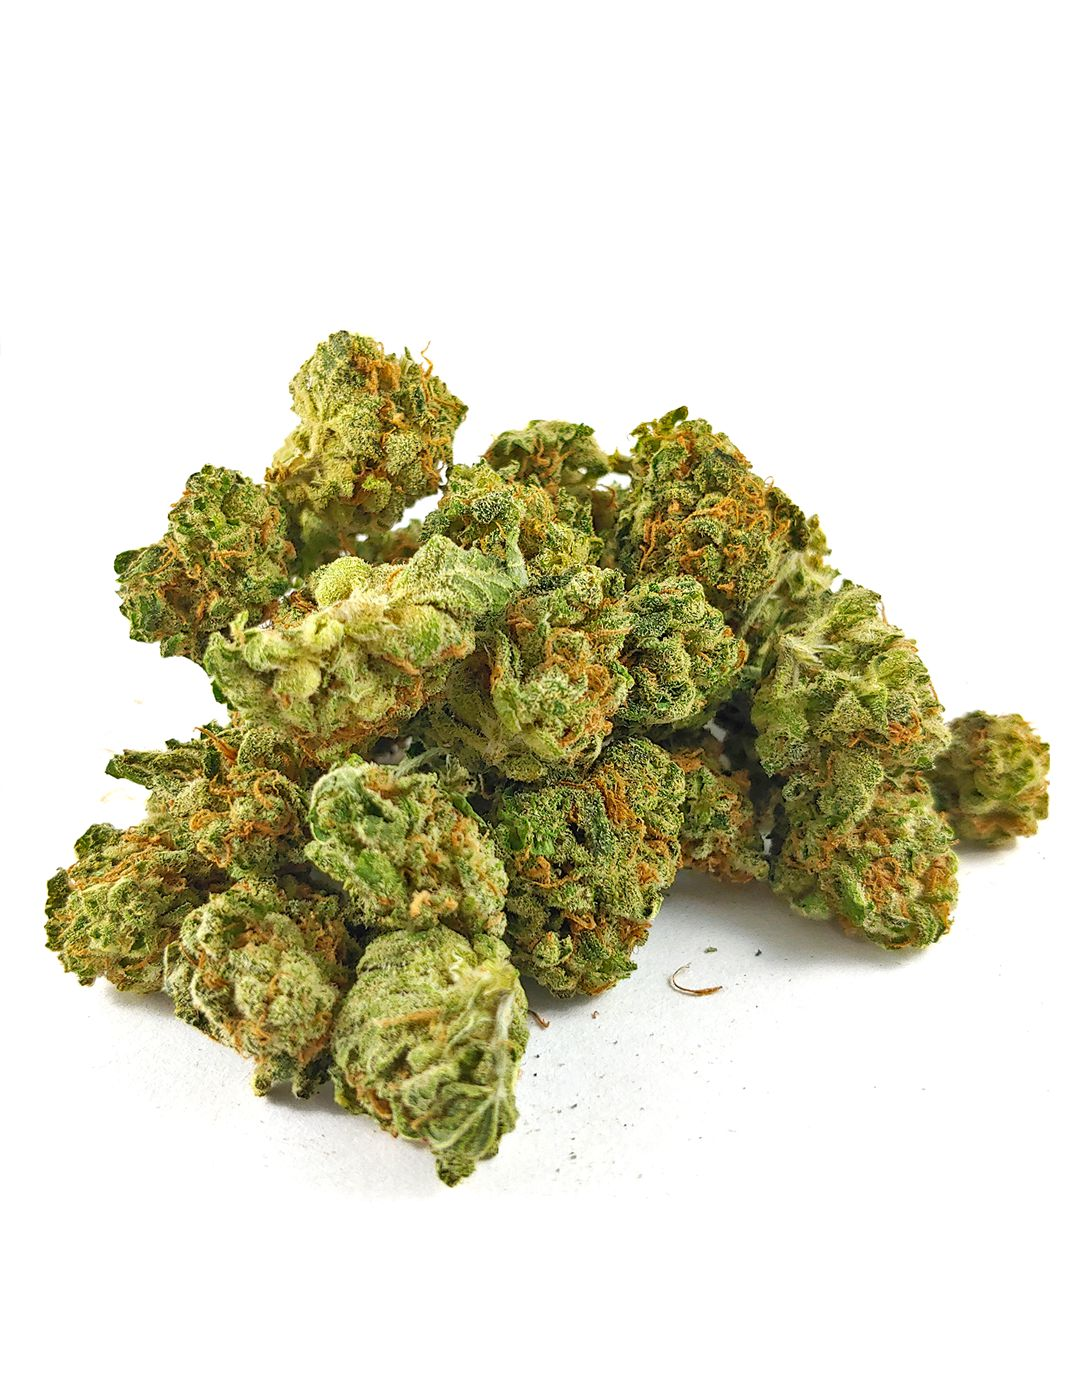 (AAA) Death Bubba Popcorn (28 Grams) by Ganja Grams - Image © 2020 Ganja Grams. All Rights Reserved.